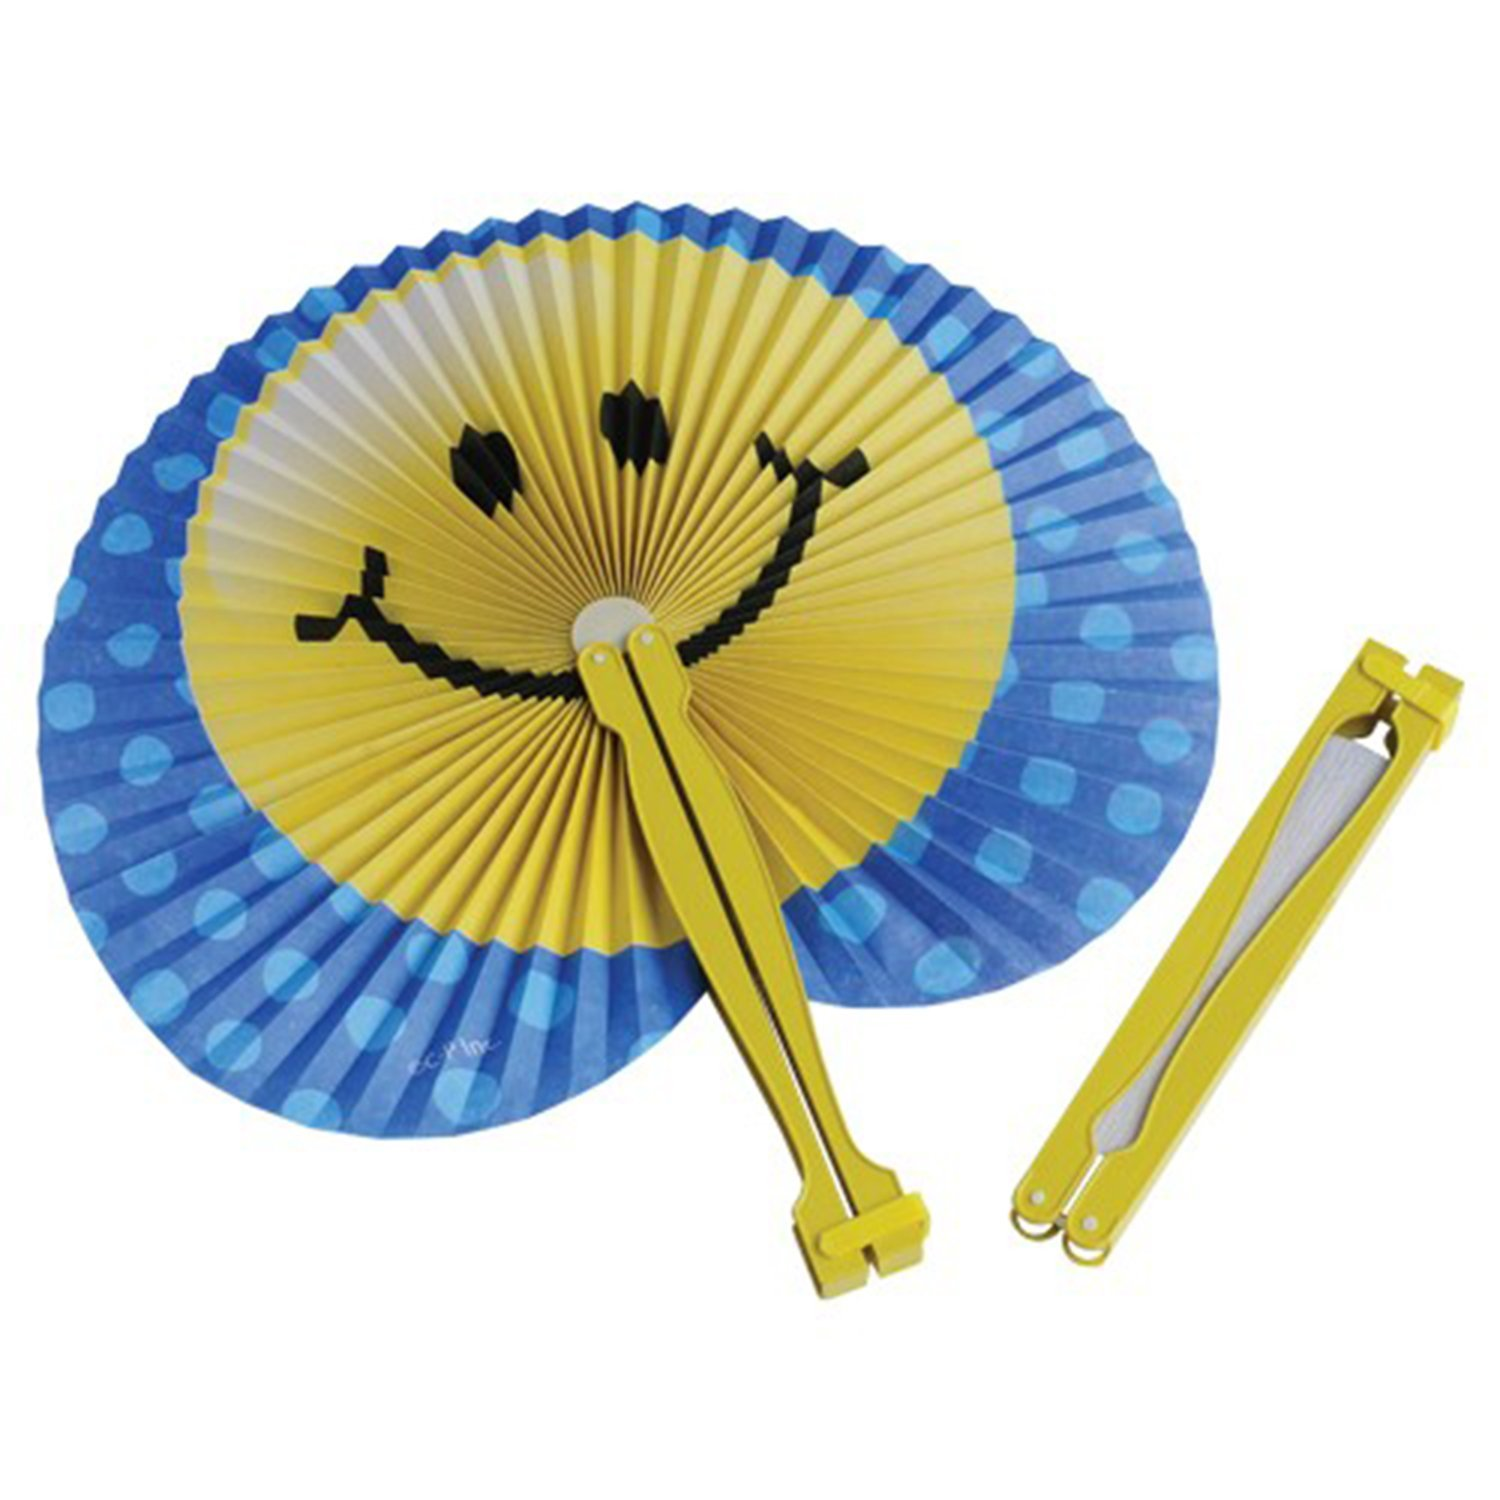 Cheap Fans Happy, find Fans Happy deals on line at Alibaba.com